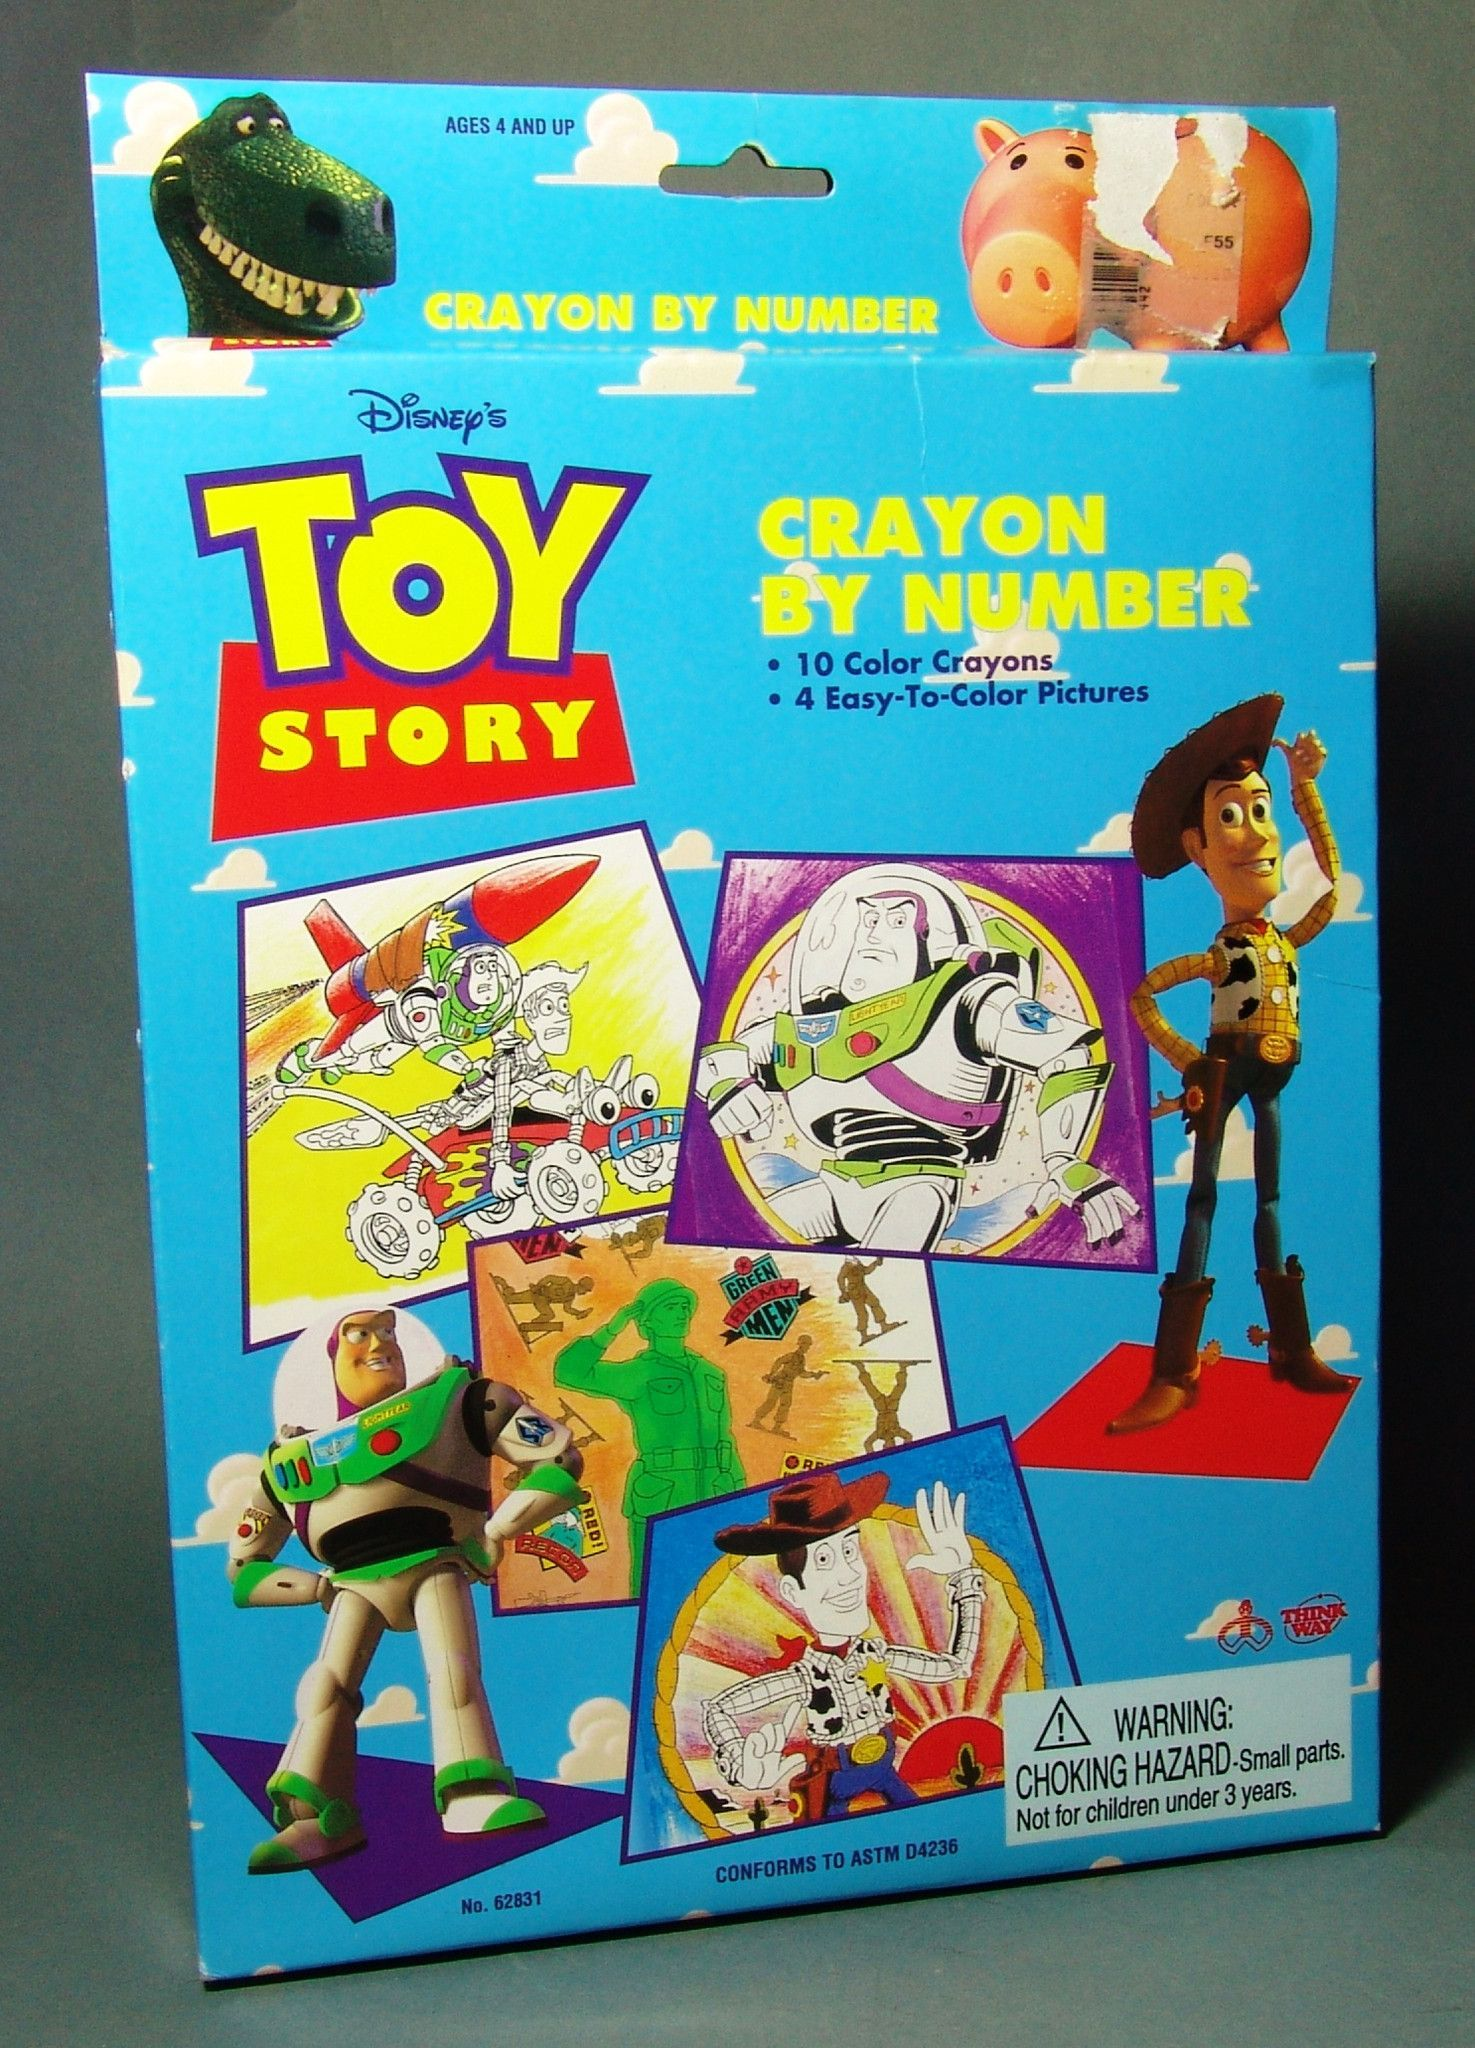 Toy Story Crayon By Number | Toy Story First Release Toys ...